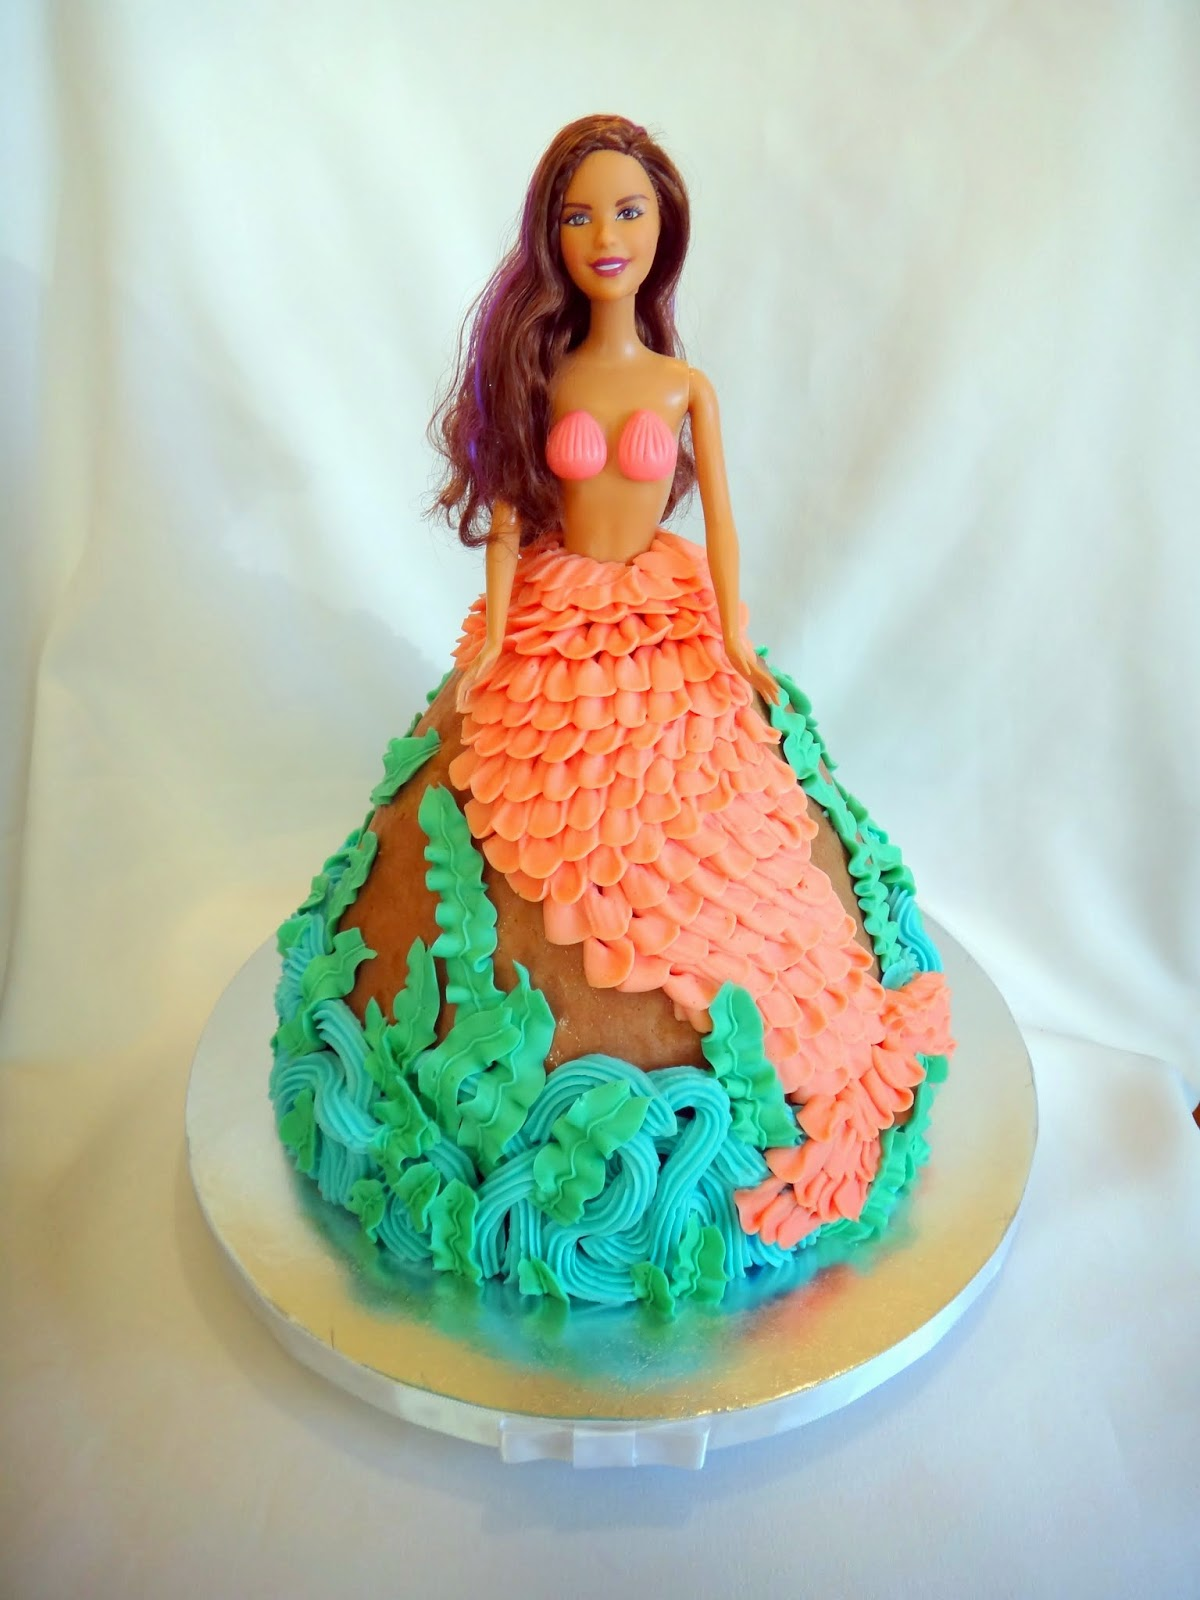 Barbie Mermaid Cake Images : Pin Barbie Mermaid Cake Ideas And Designs Cake on Pinterest